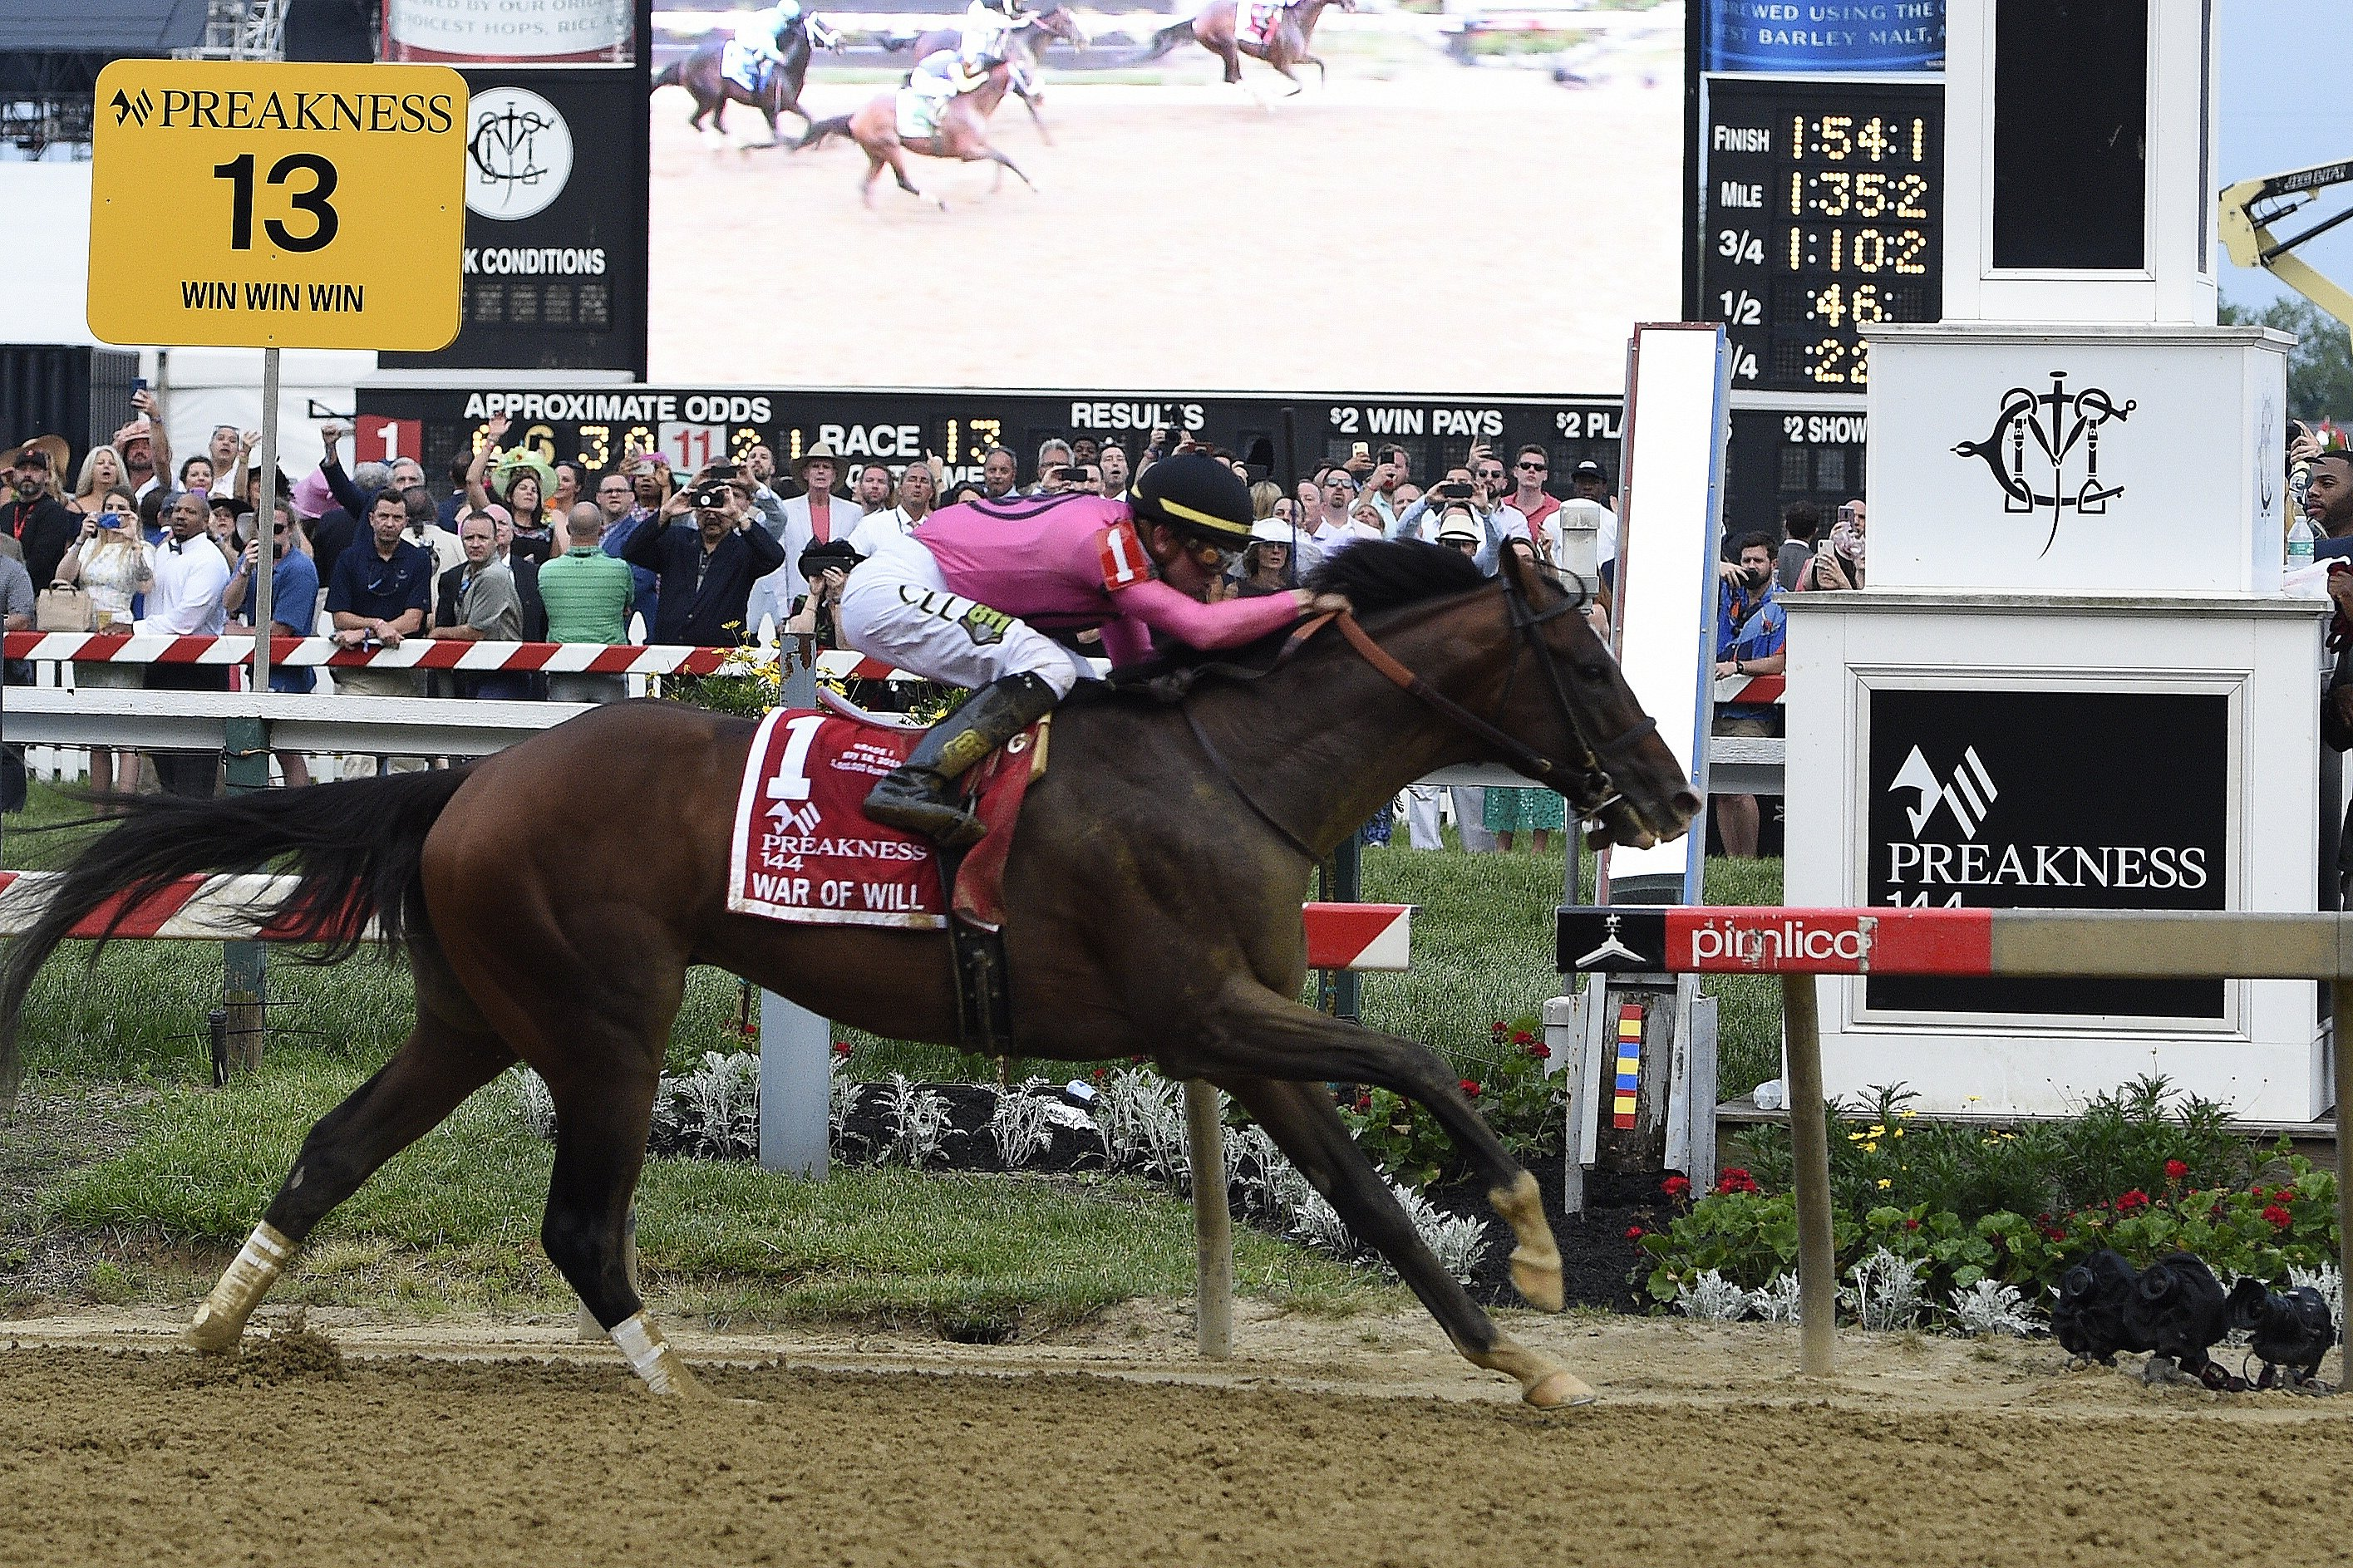 War of Will wins the 2019 Preakness Stakes